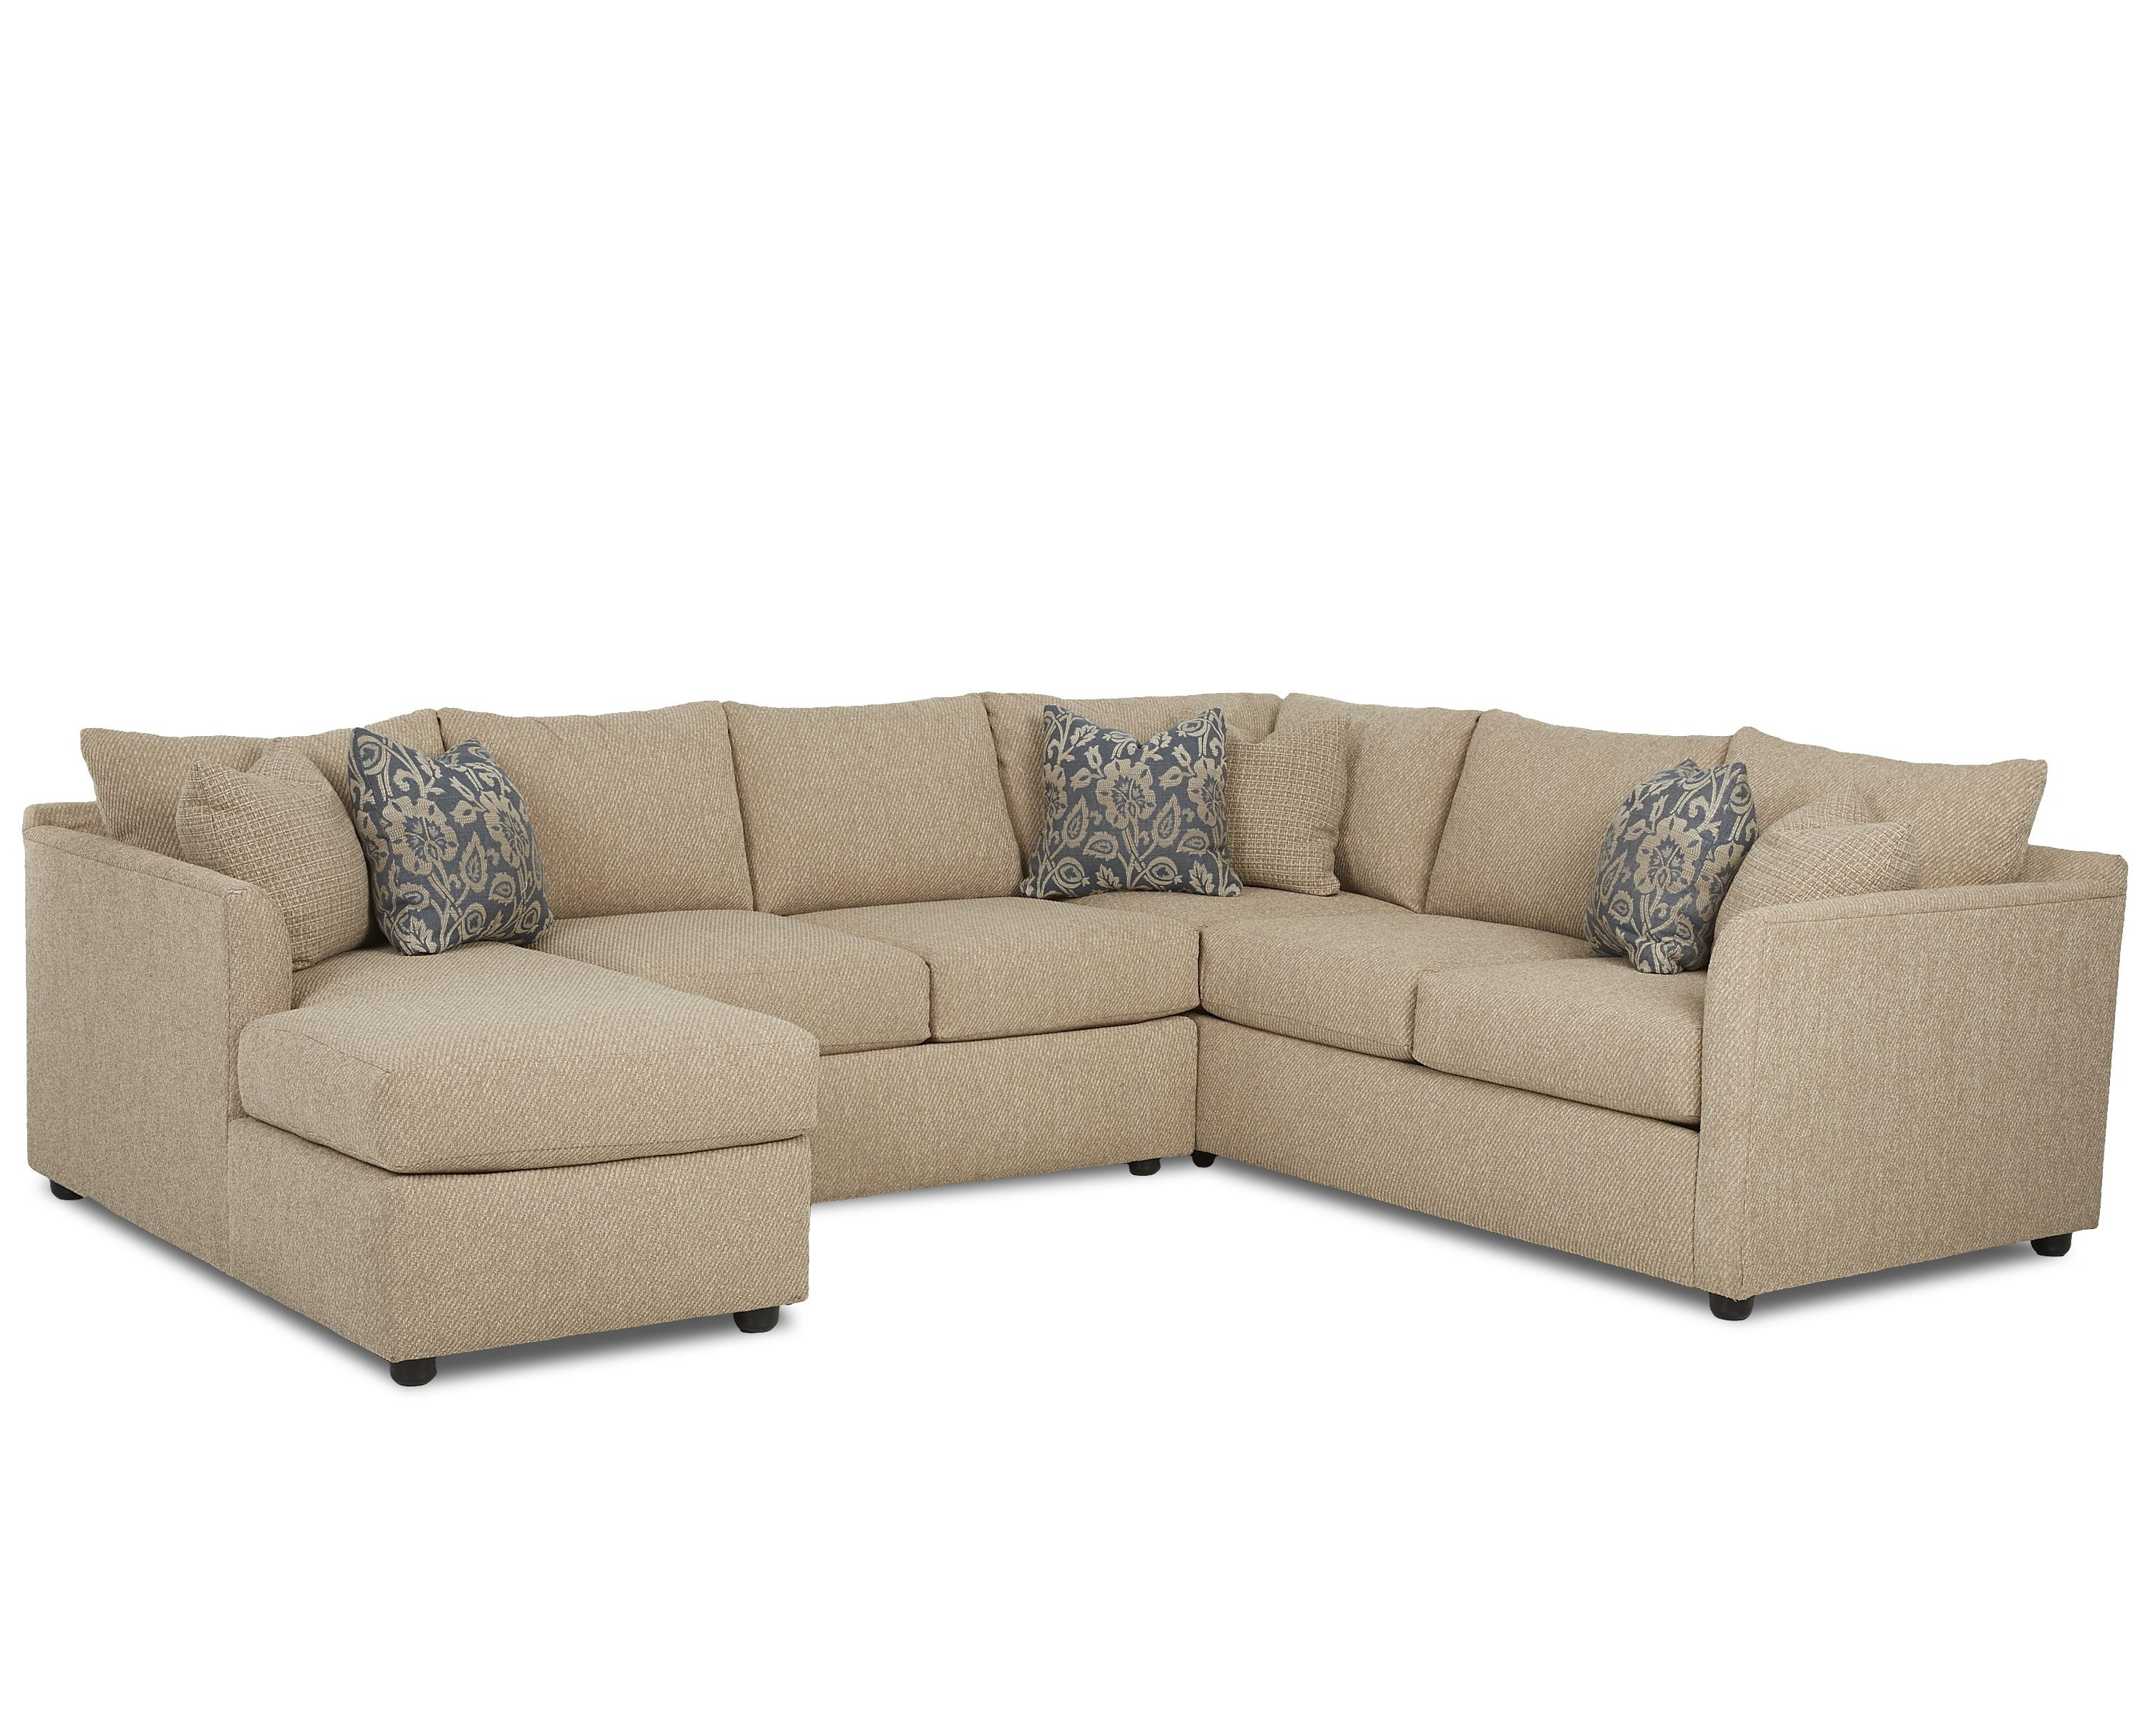 Sectional Sofas At Atlanta In Most Popular Transitional Sectional Sofa With Chaisetrisha Yearwood Home (View 8 of 15)